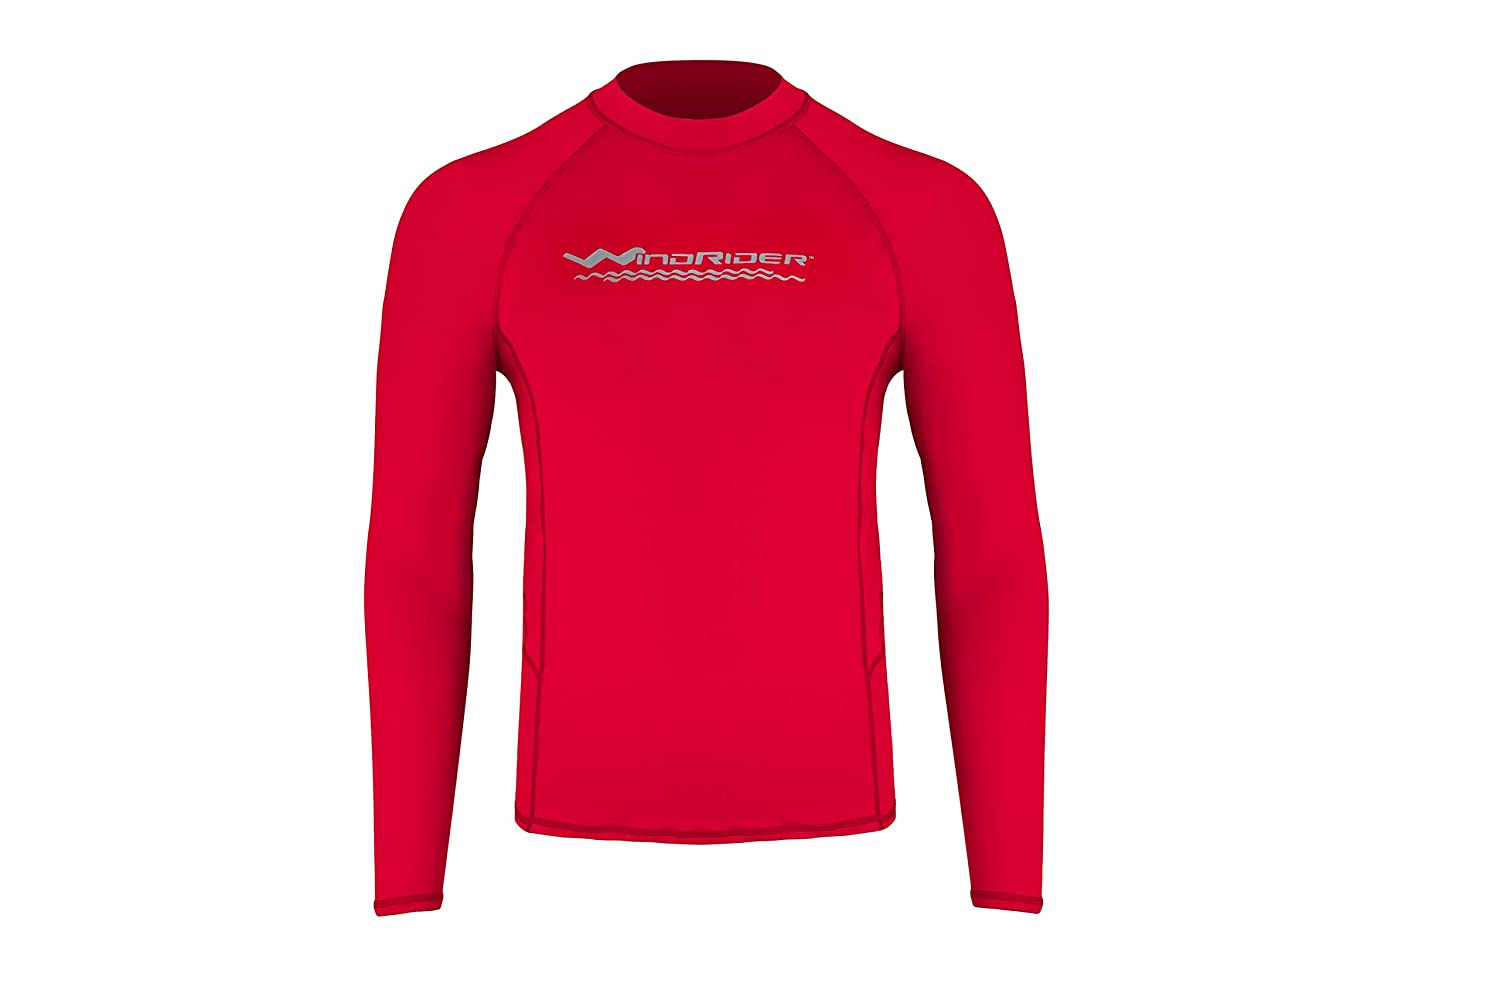 WindRider Men's Rash Guard Swim Shirt – Long Sleeve UPF 50+ Performance Fit